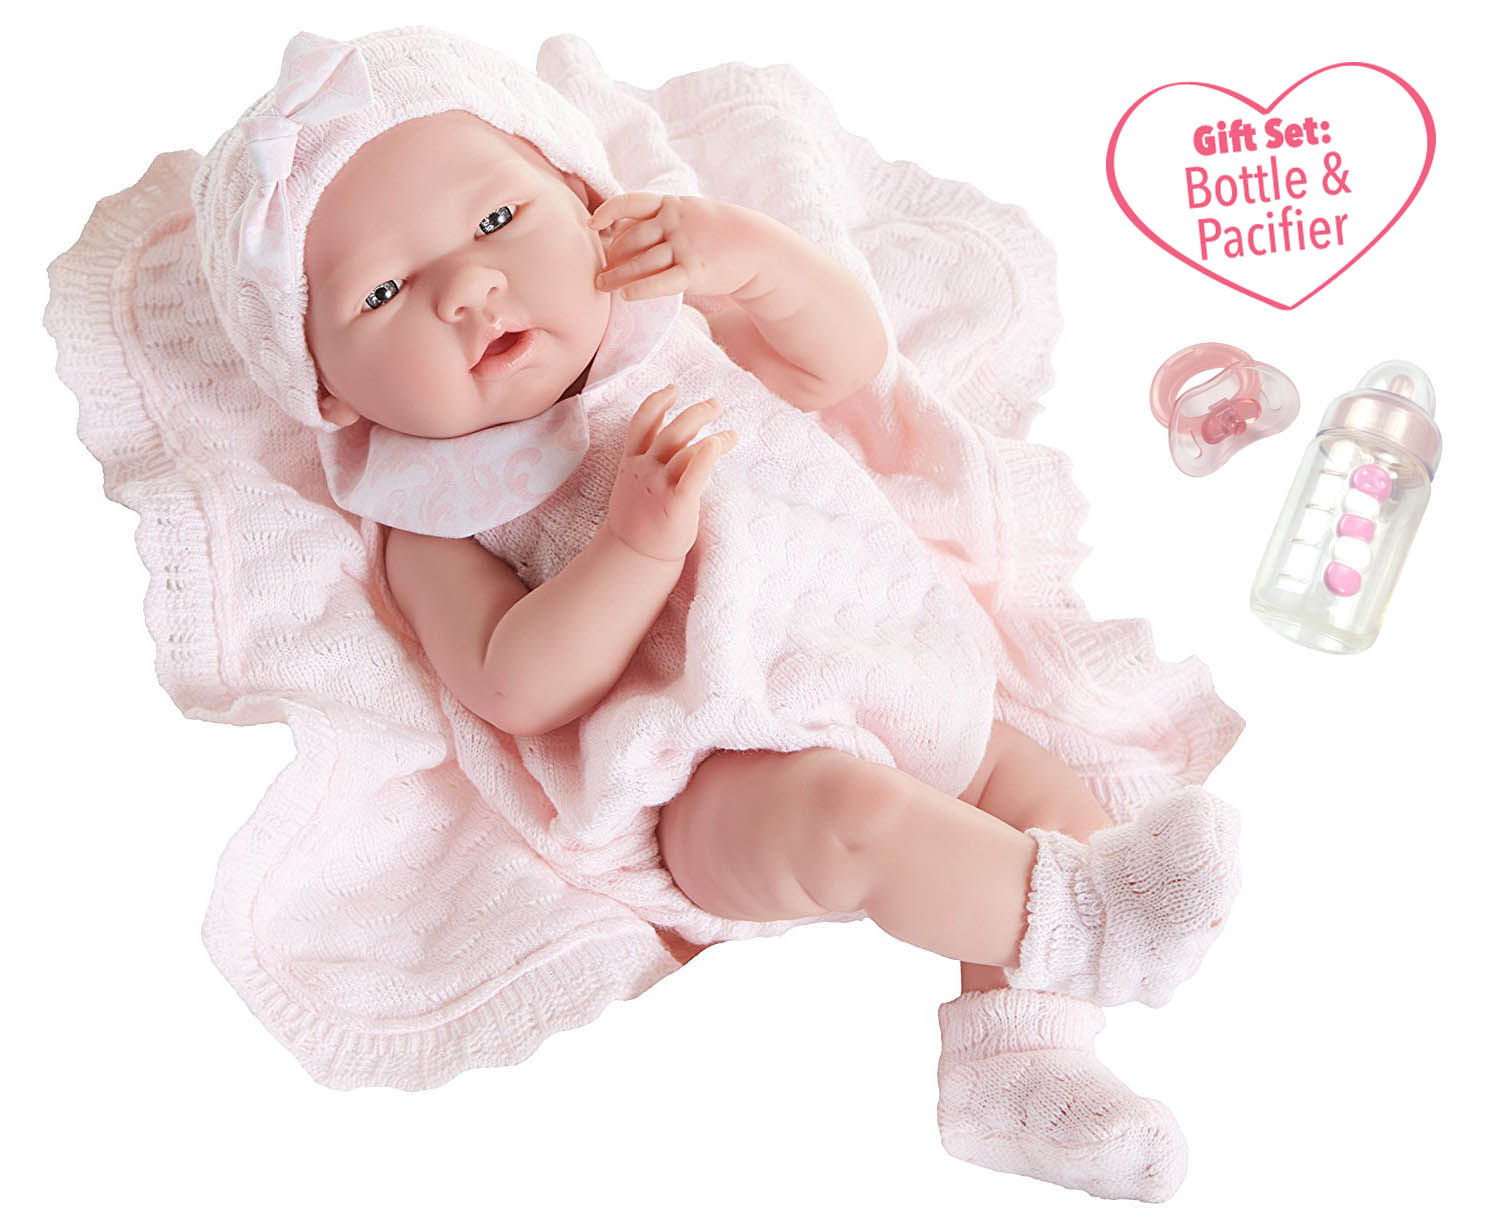 """JC Toys La Newborn All Vinyl Anatomically Correct Real Girl 15"""" Baby Doll in Pink Knit Outfit and... by JC Toys Group Inc."""